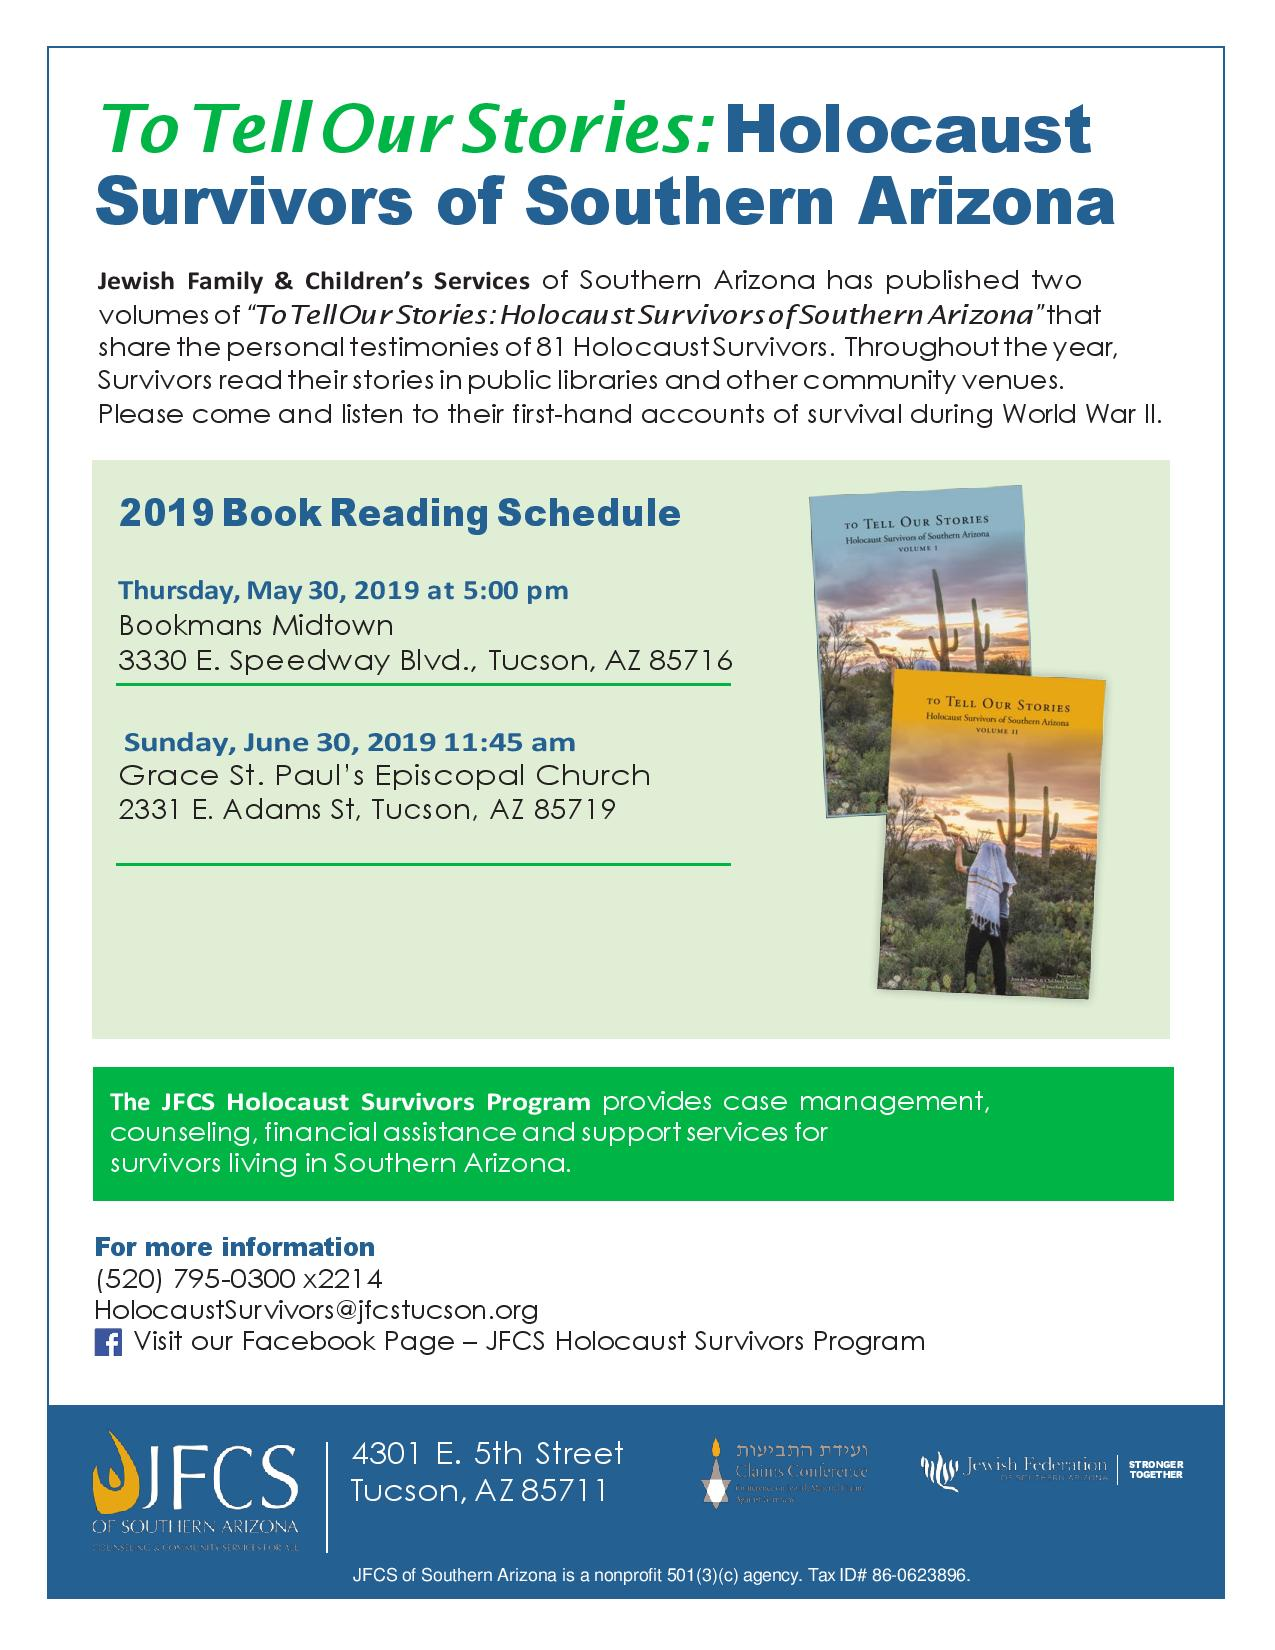 To Tell Our Stories: Holocaust Survivors of Southern Arizona @ Bookmans Midtown